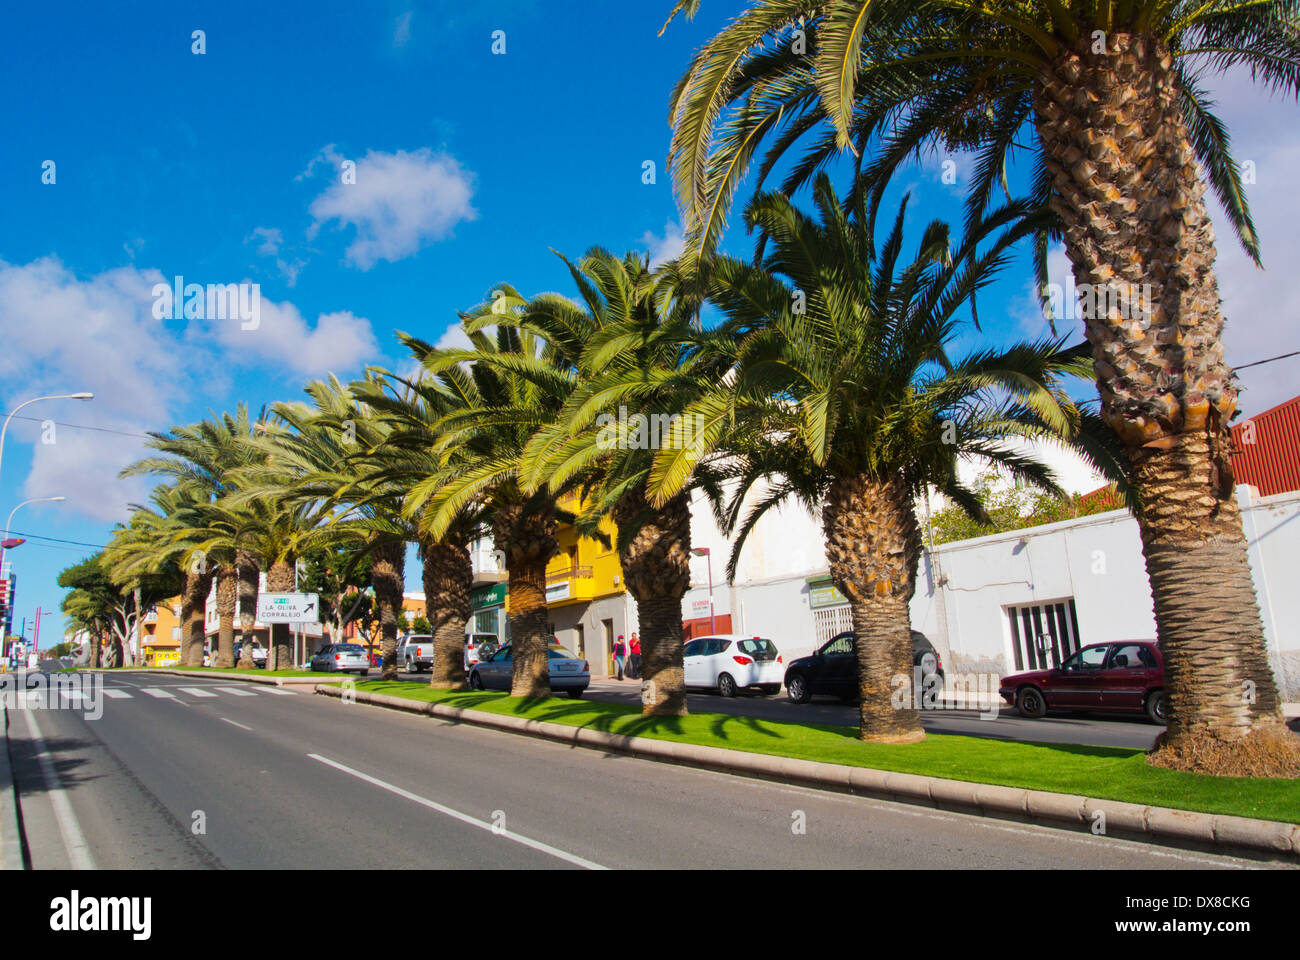 Calle Leon y Castello street, Puerto del Rosario, Fuerteventura, Canary Islands, Spain, Europe - Stock Image